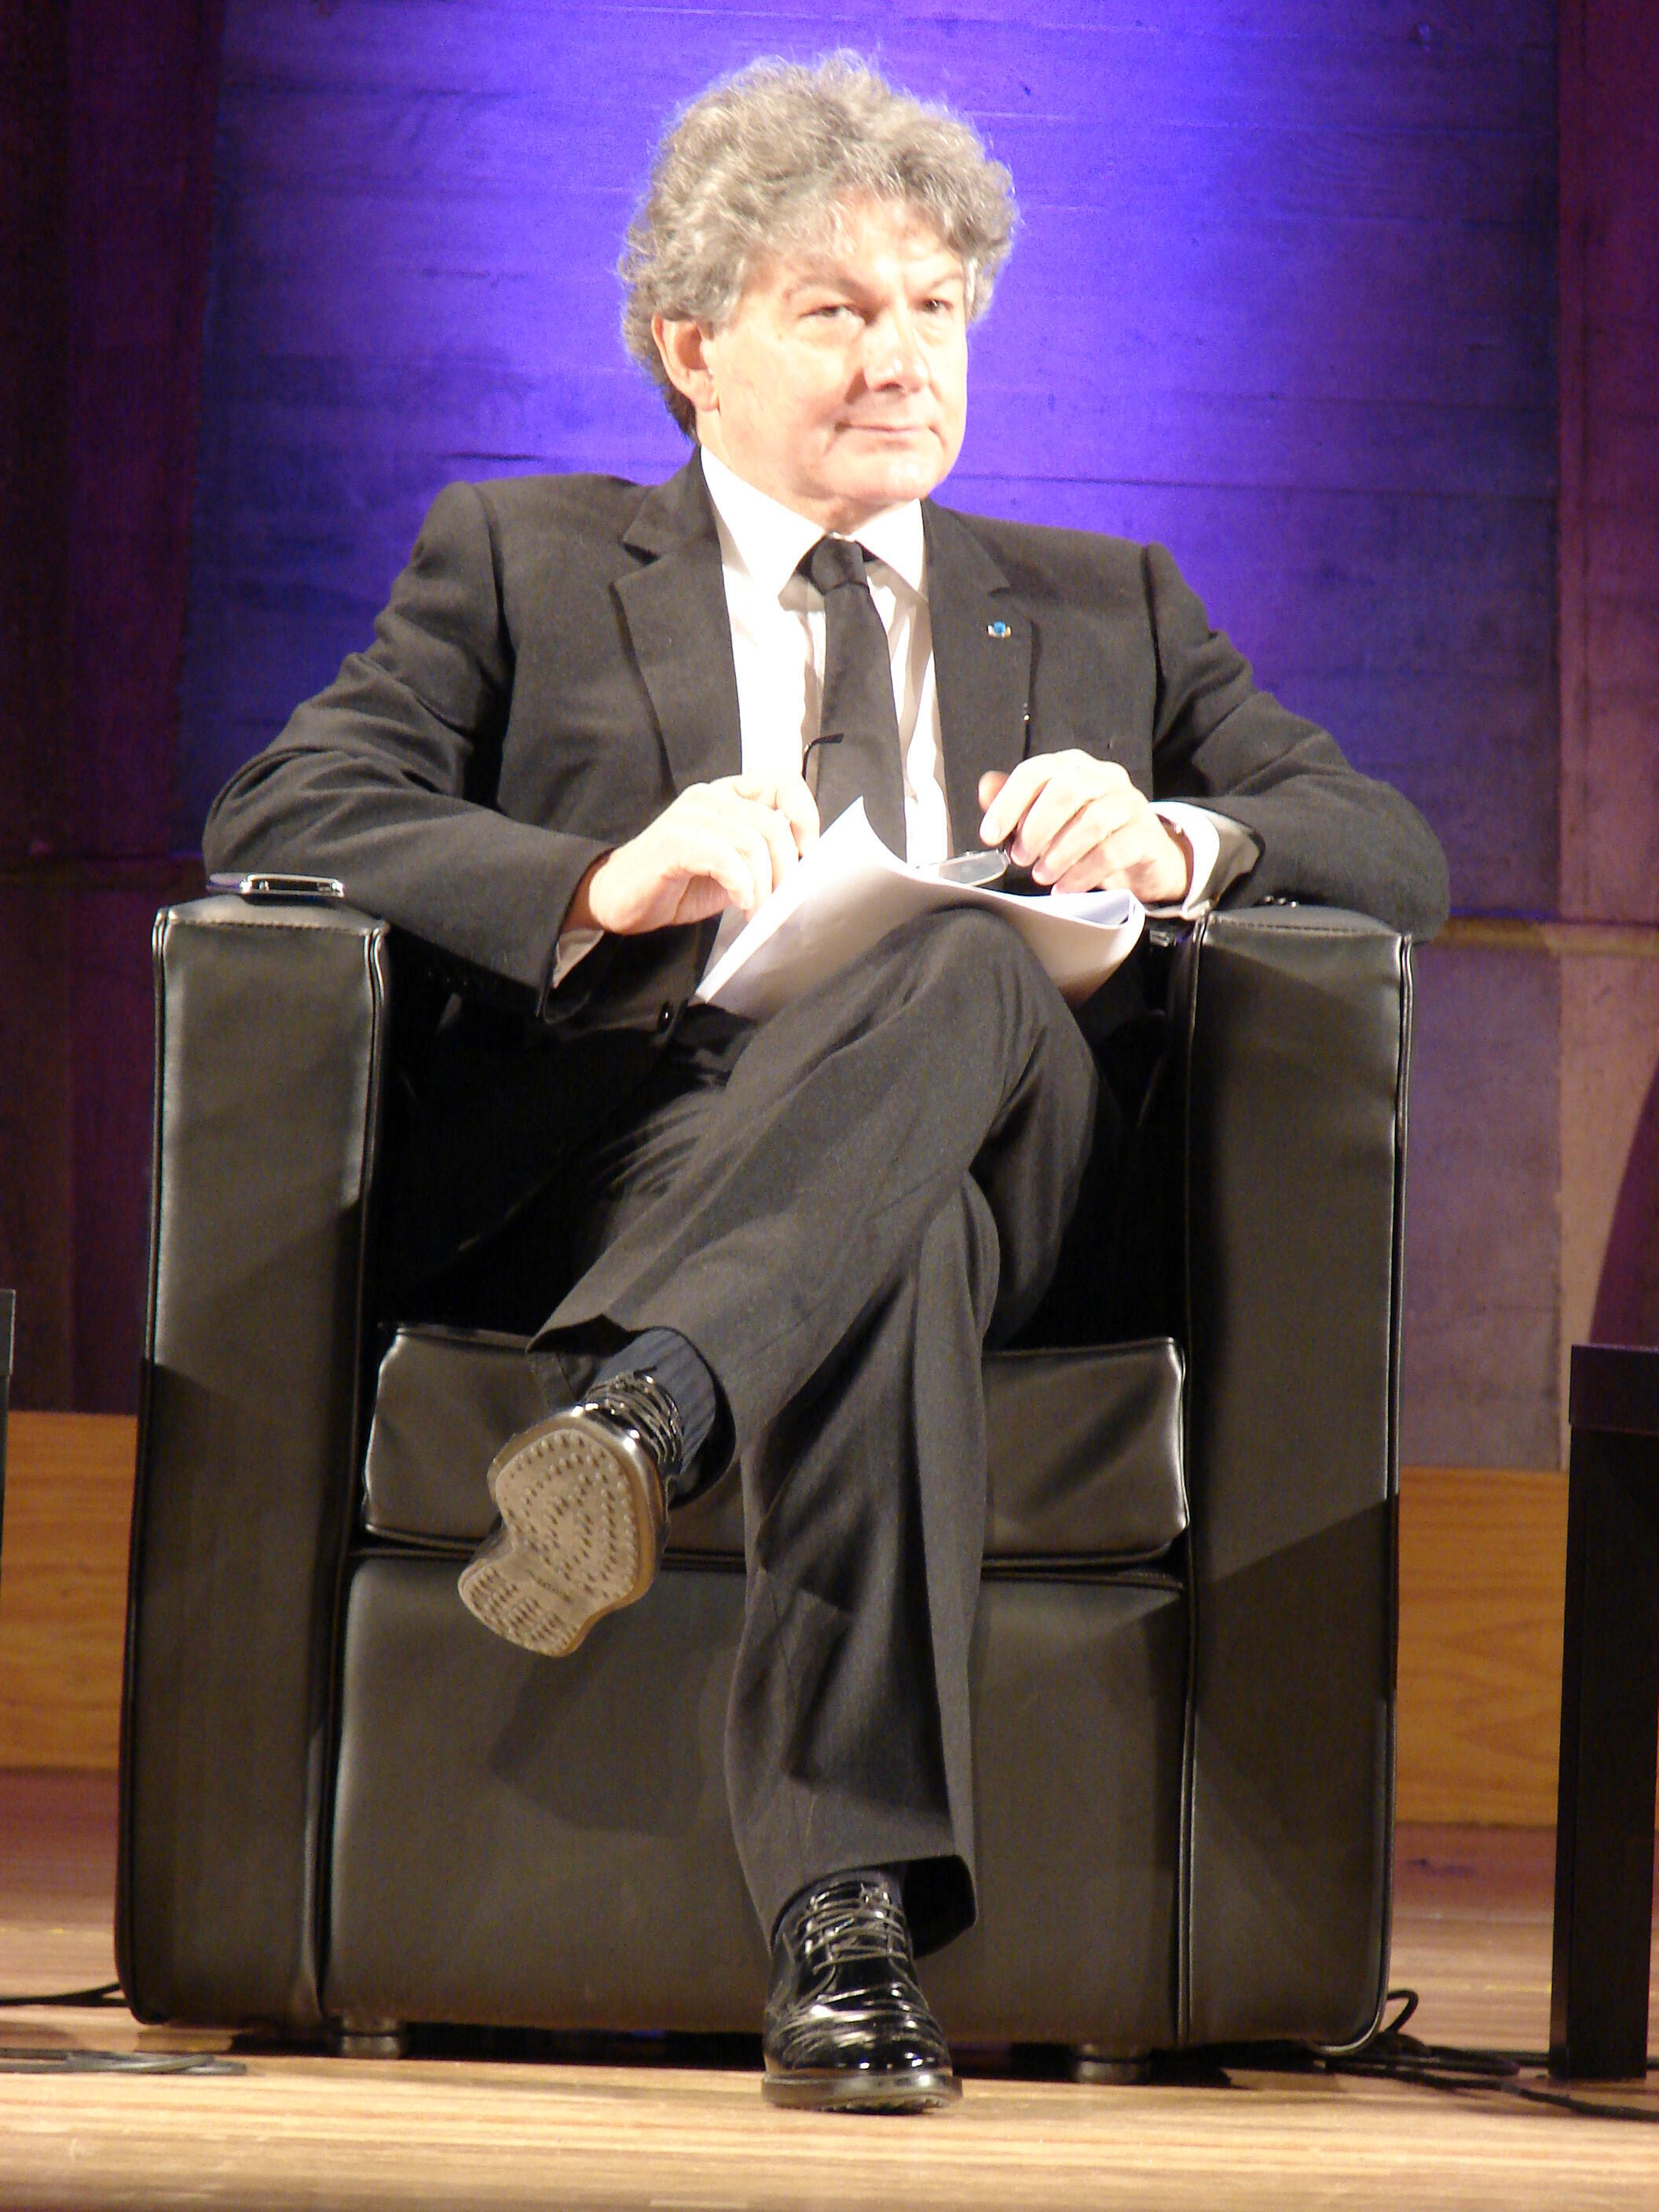 Thierry Breton served as economy minister under late president Jacques Chirac